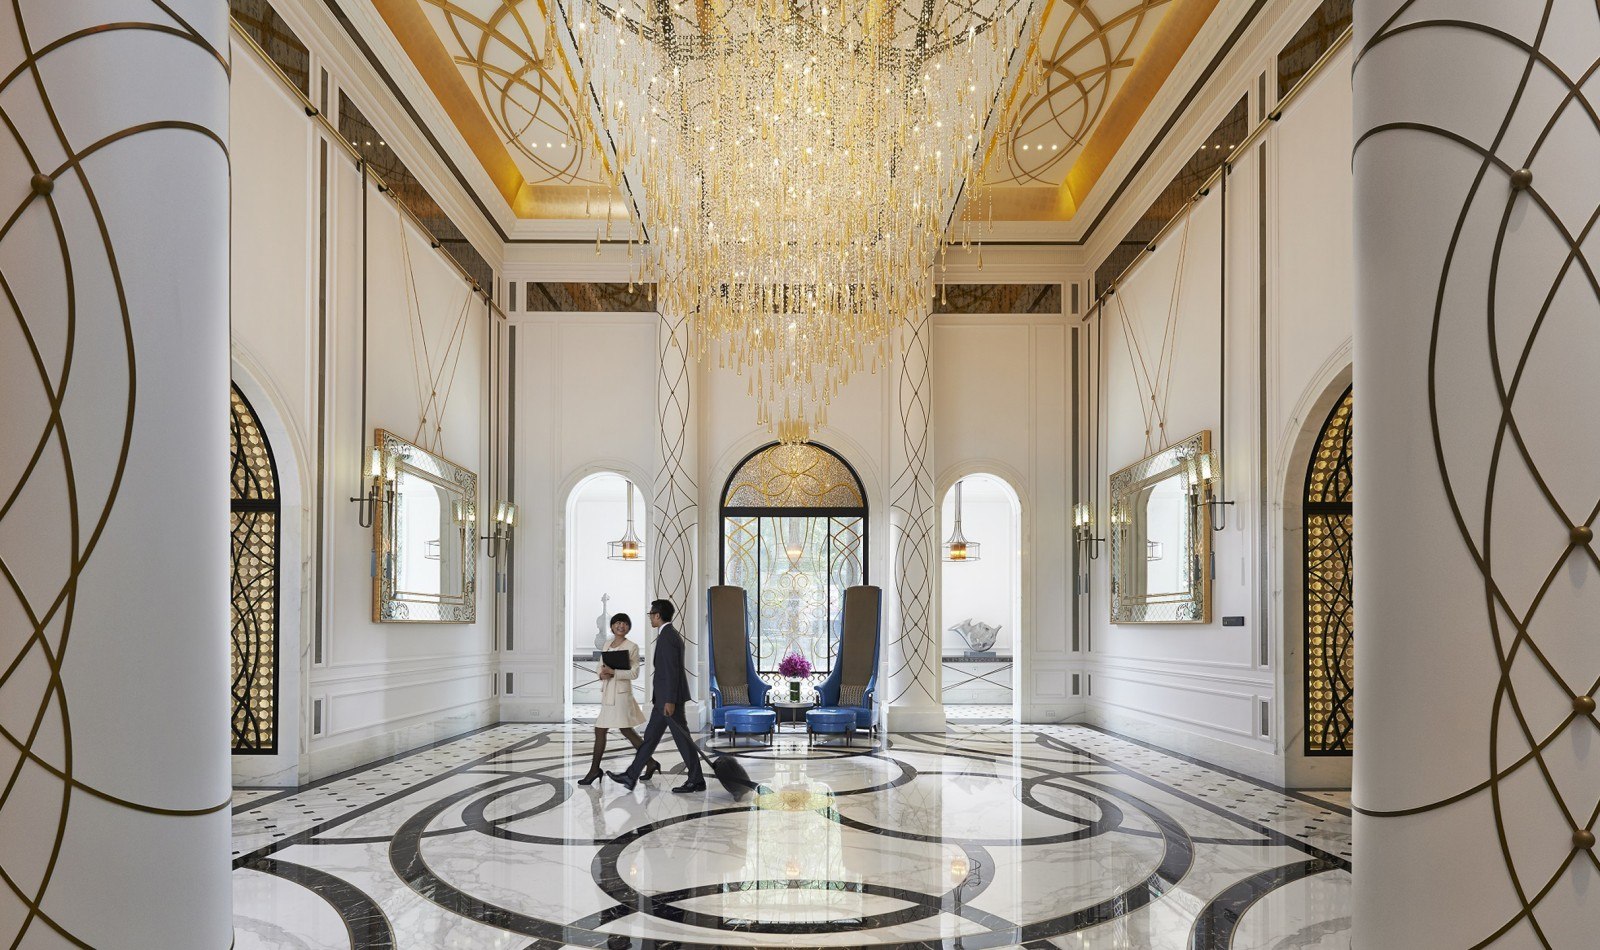 Best interior designers based in London chandeliers 10 Beautiful Chandeliers for a Hotel Design London Best Interior Designers Four IV chandeliers 10 Beautiful Chandeliers for a Hotel Design London Best Interior Designers Four IV